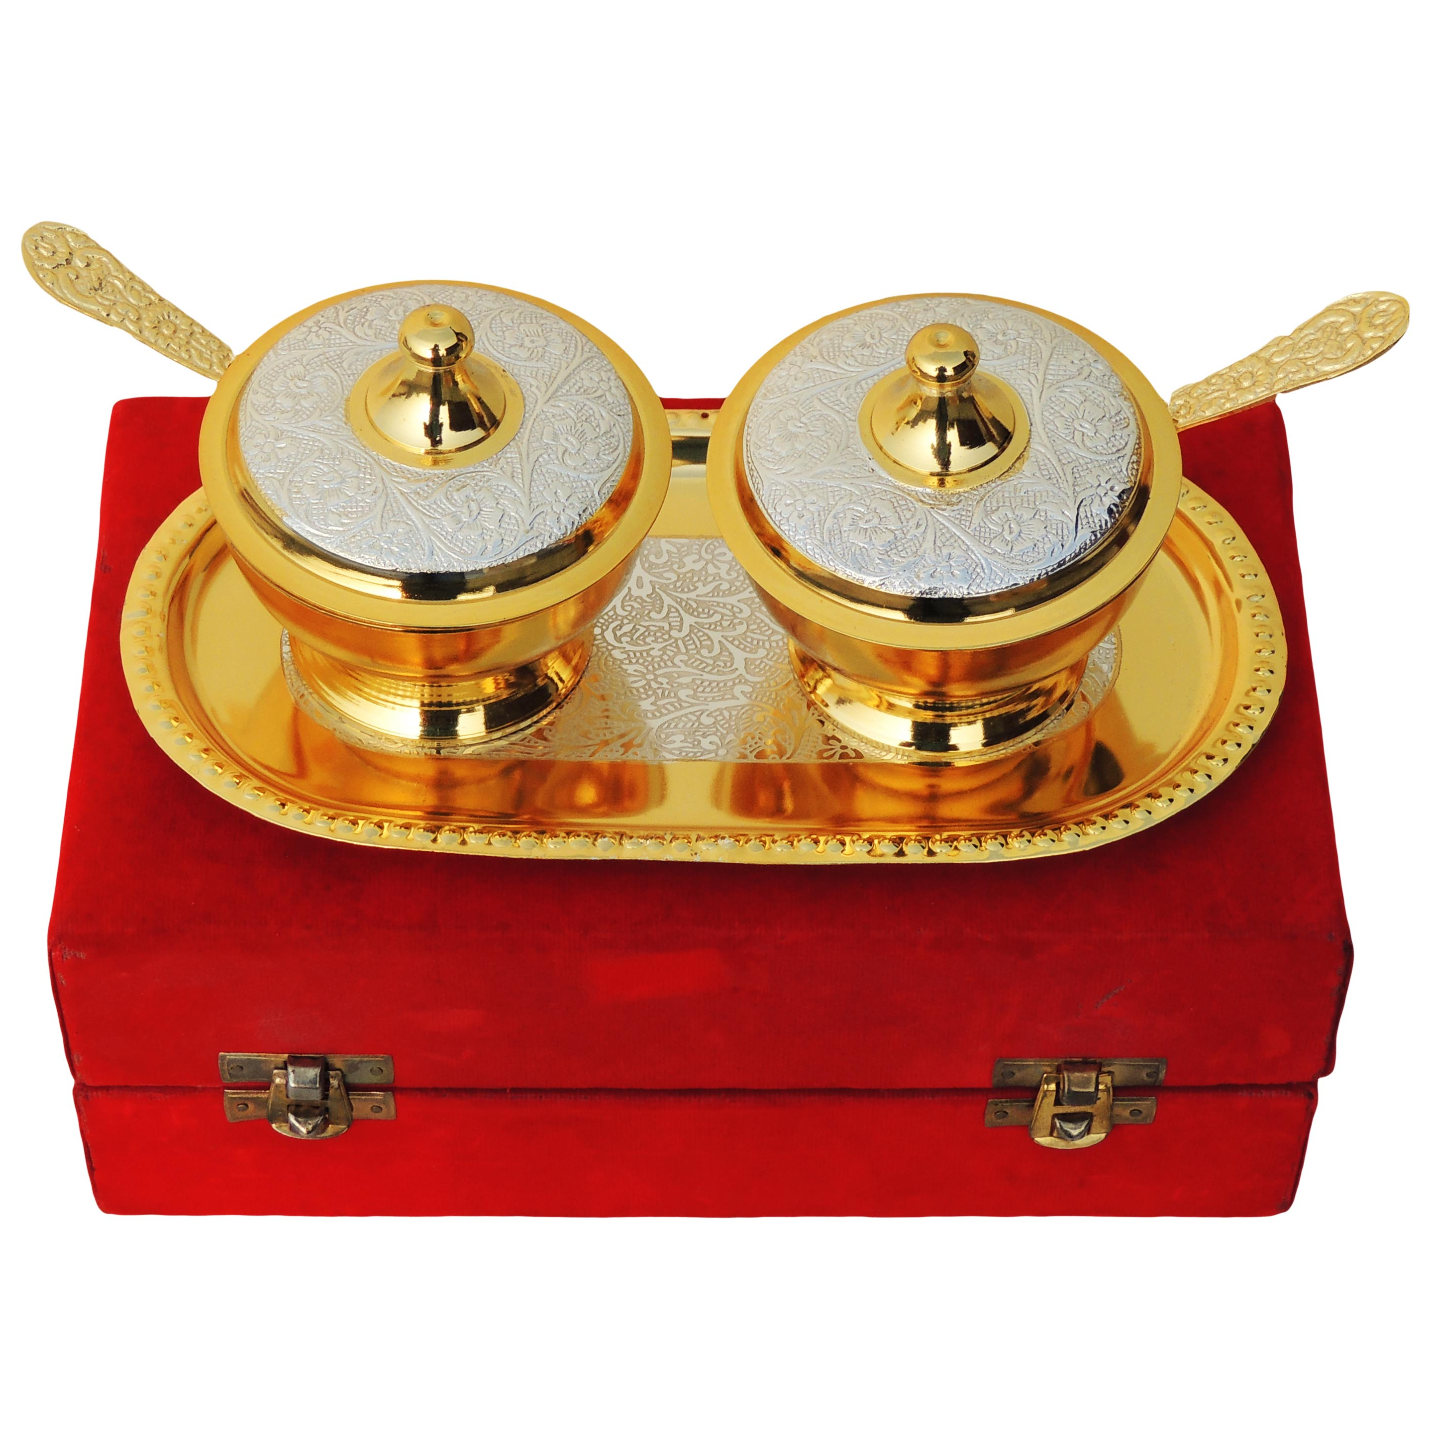 Brass Supari Set With Spoon In 2 Tone Finish - 4 Inch (B027)